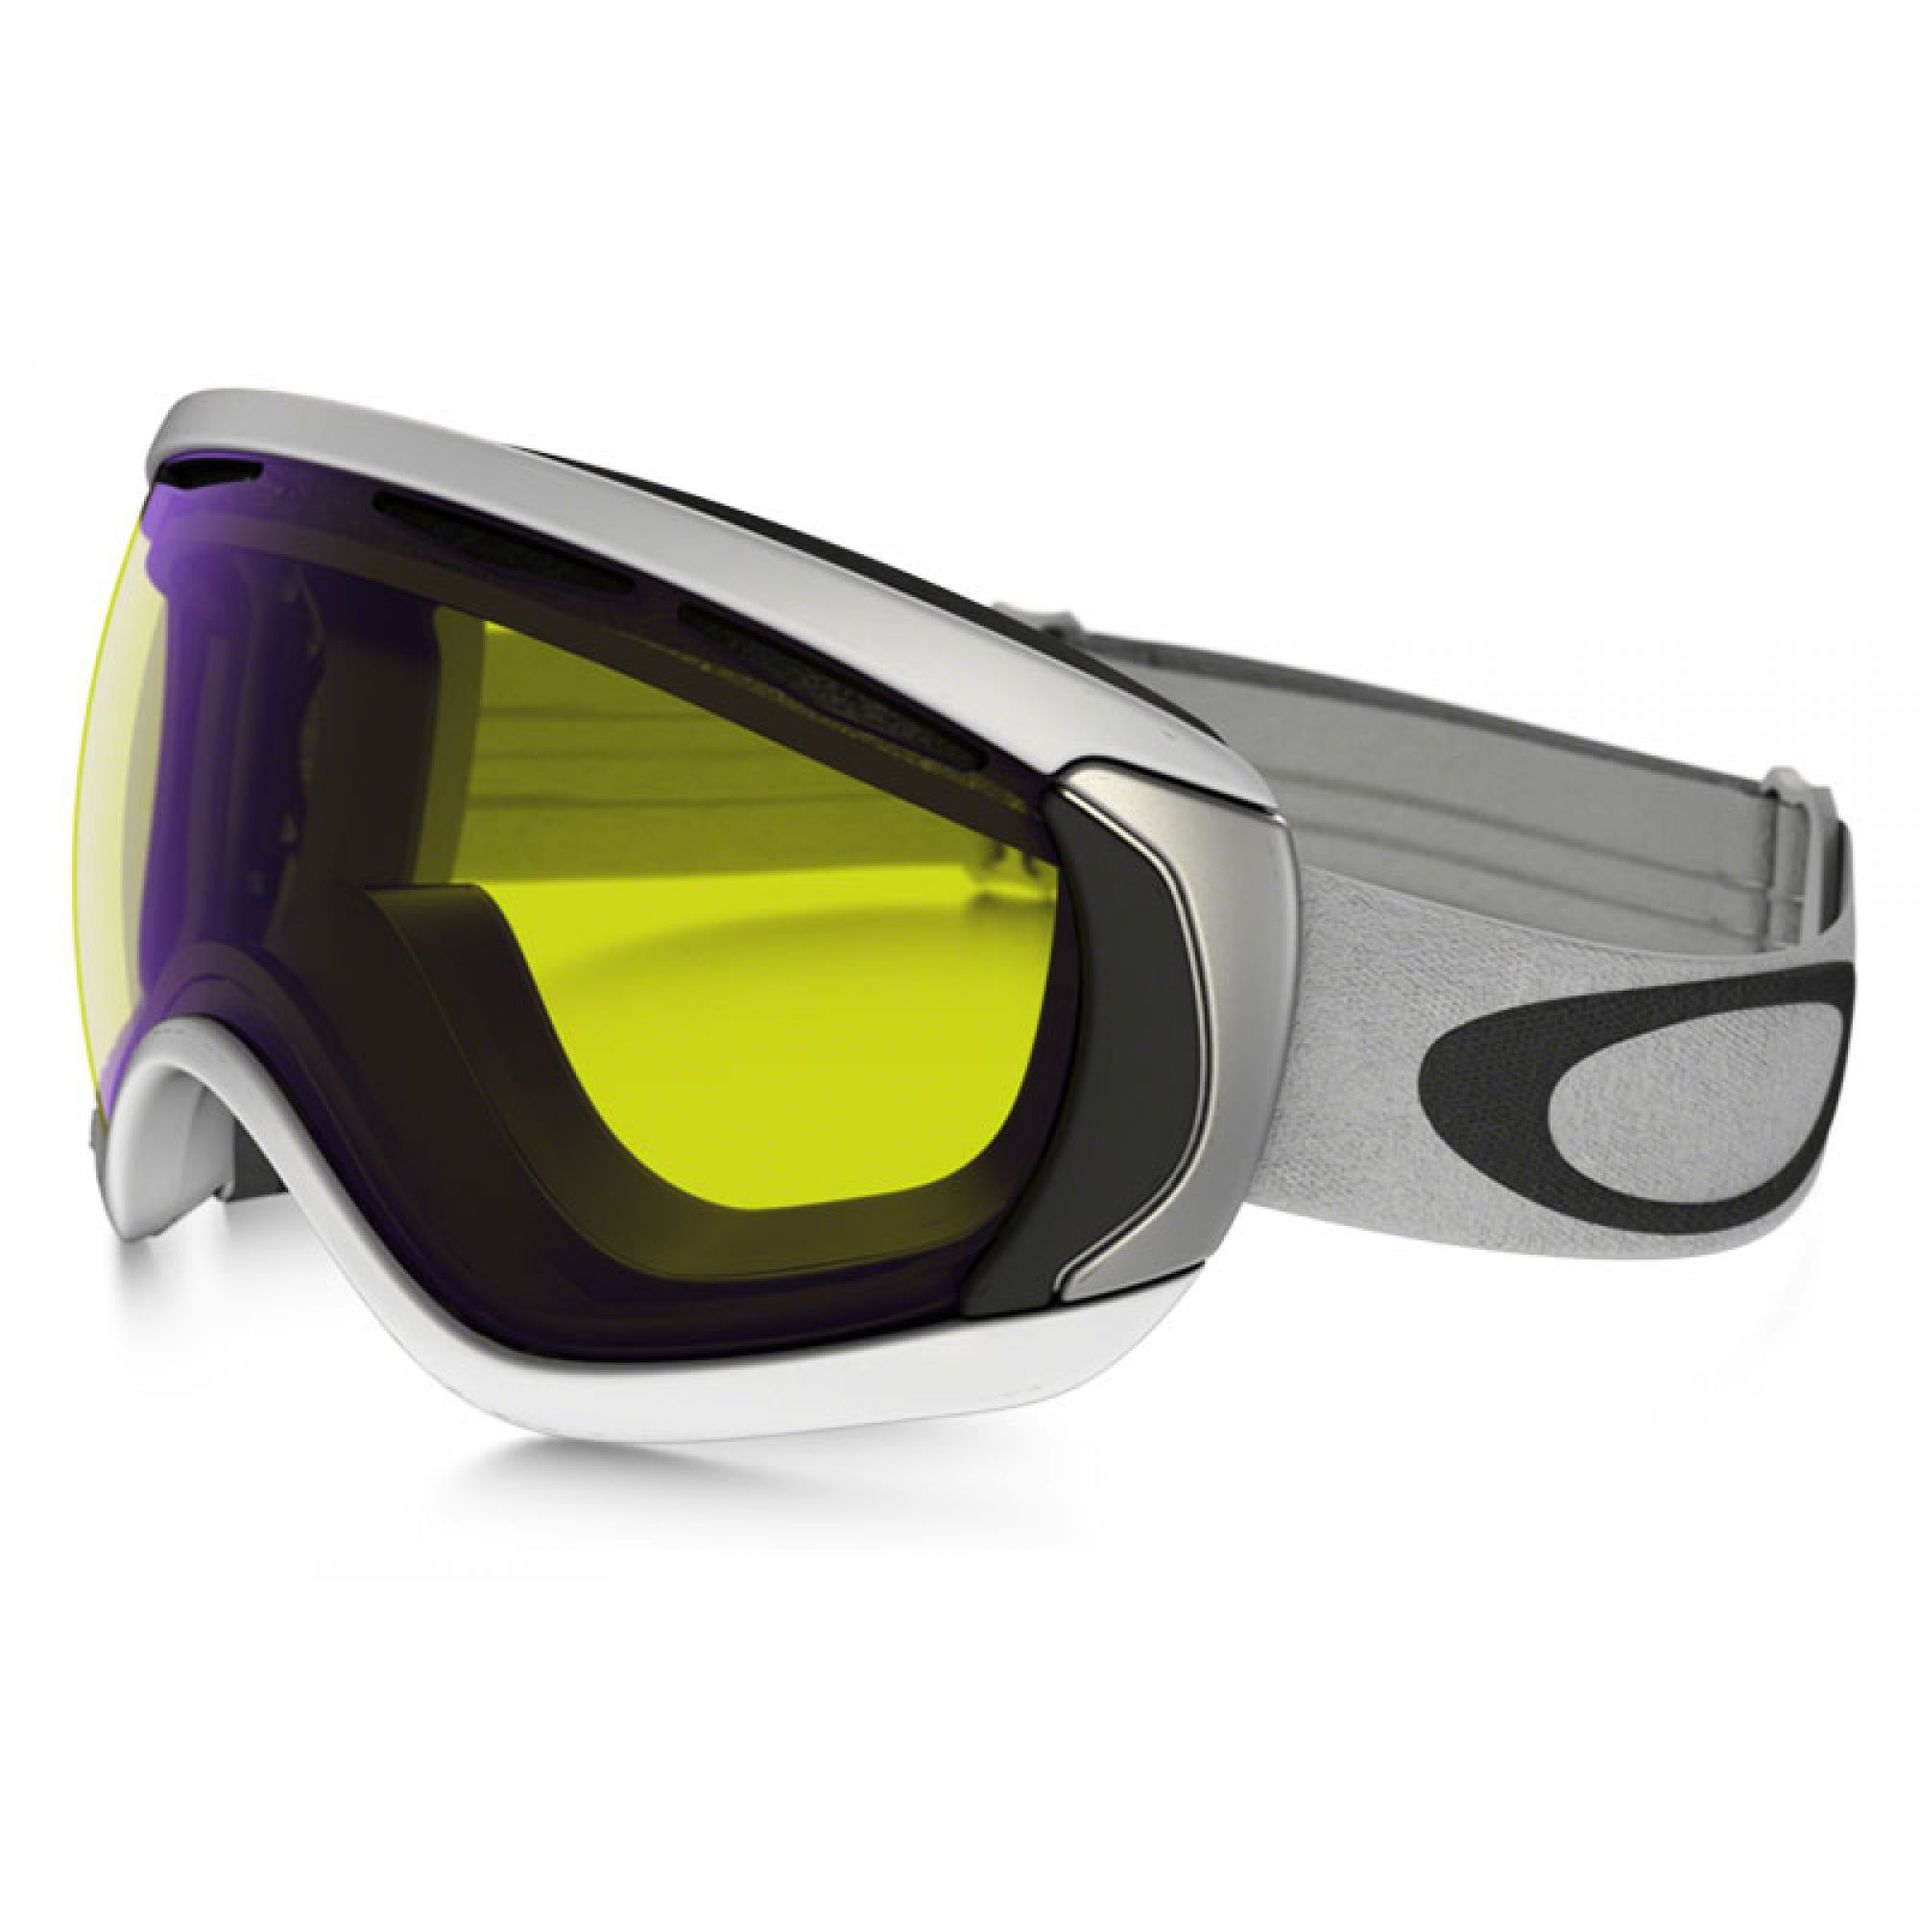 GOGLE OAKLEY CANOPY MATT WHITE|HI YELLOW